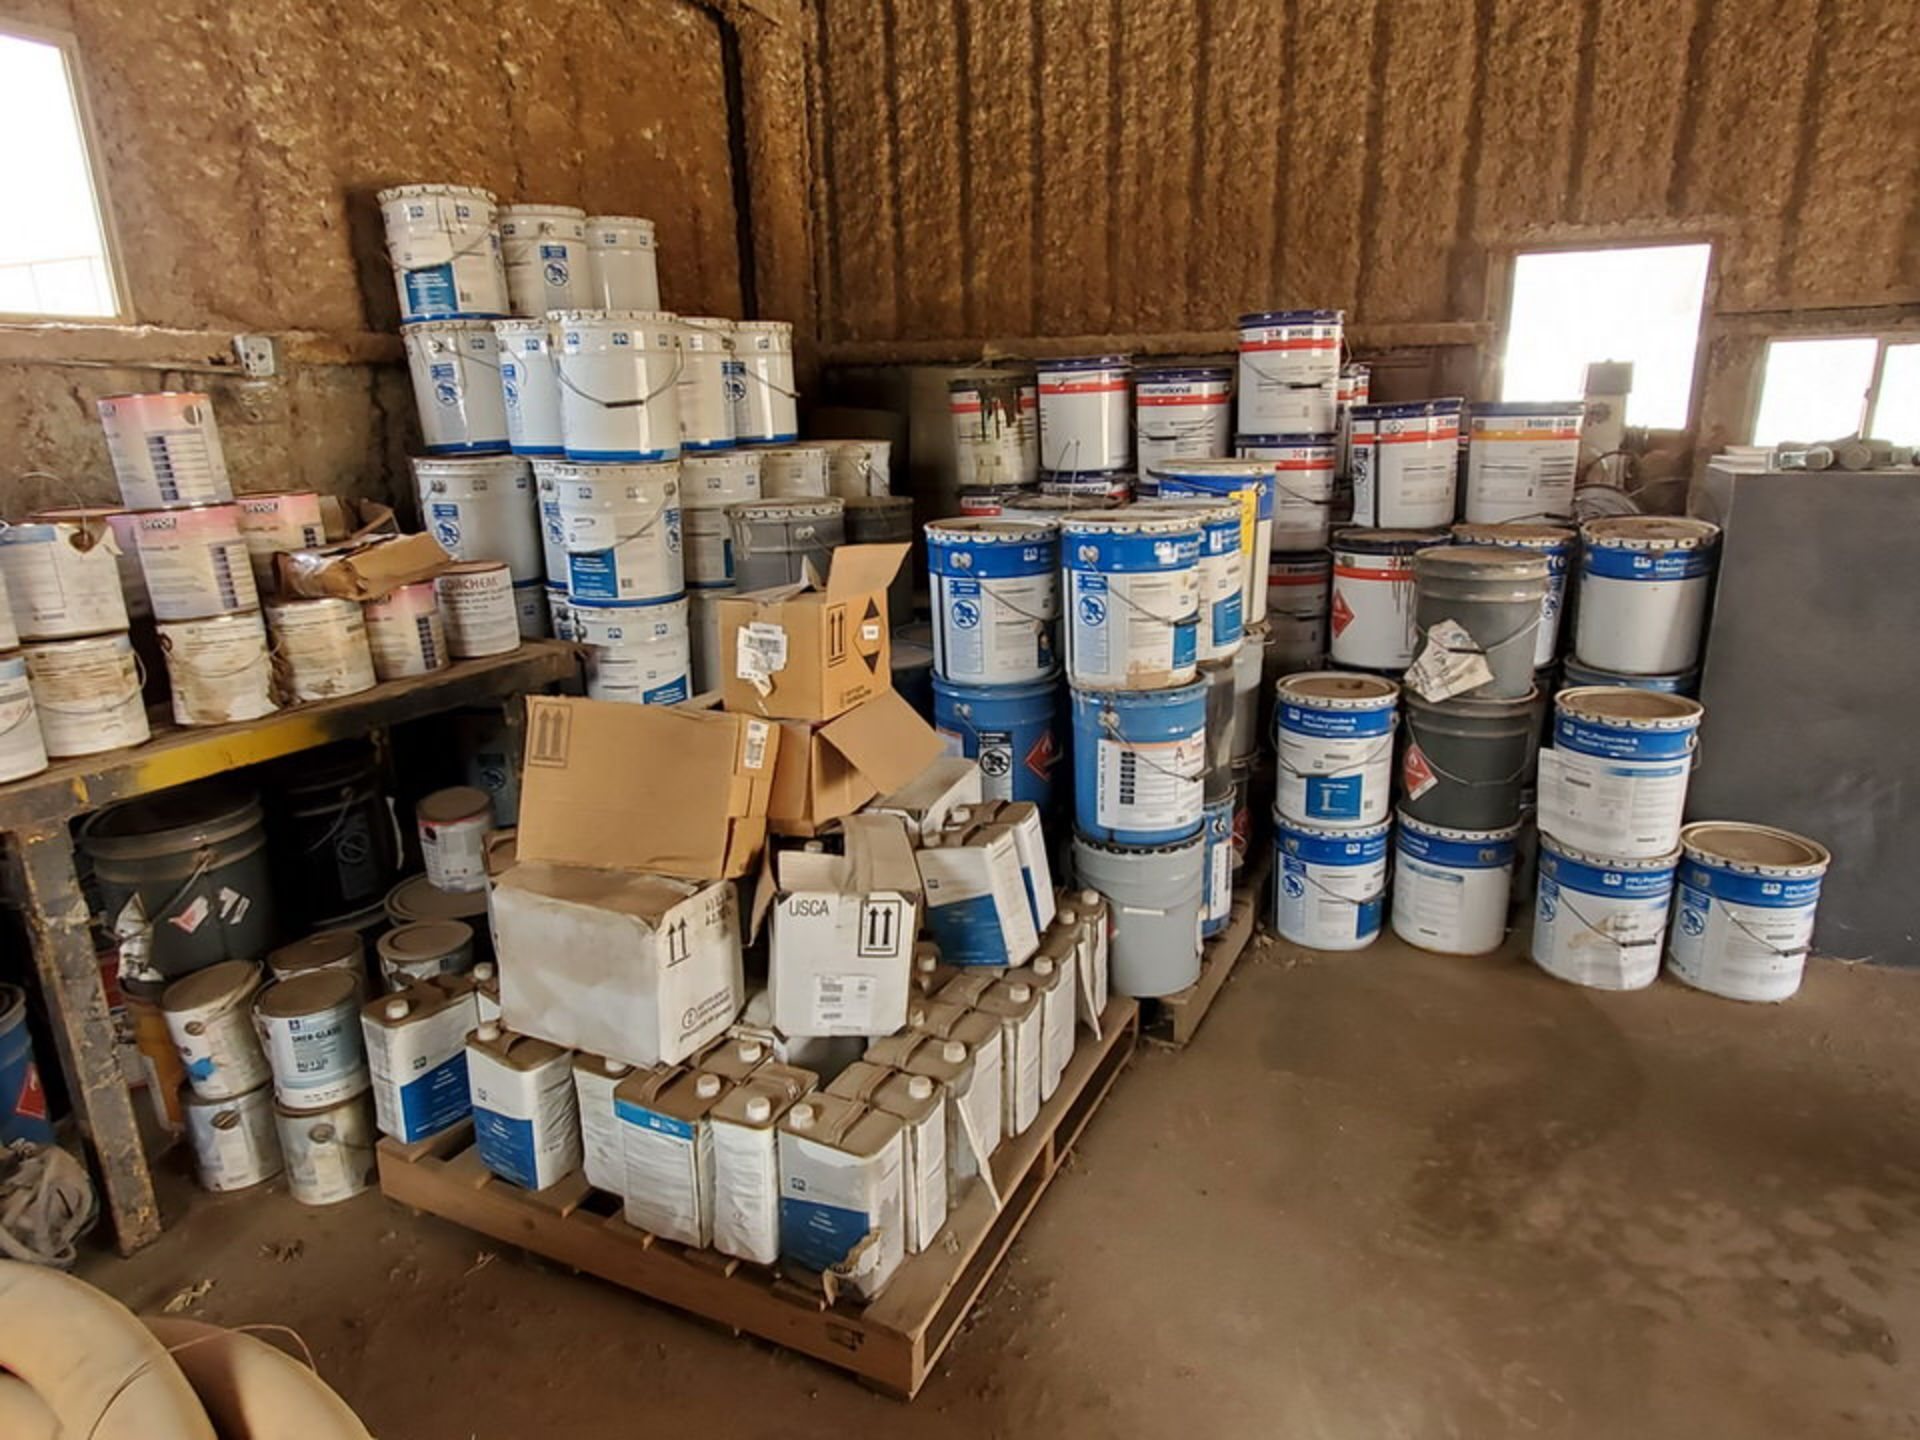 Assorted Paints & Marine Coatings Mfg's: PPG, Intl. & Other - Image 2 of 10